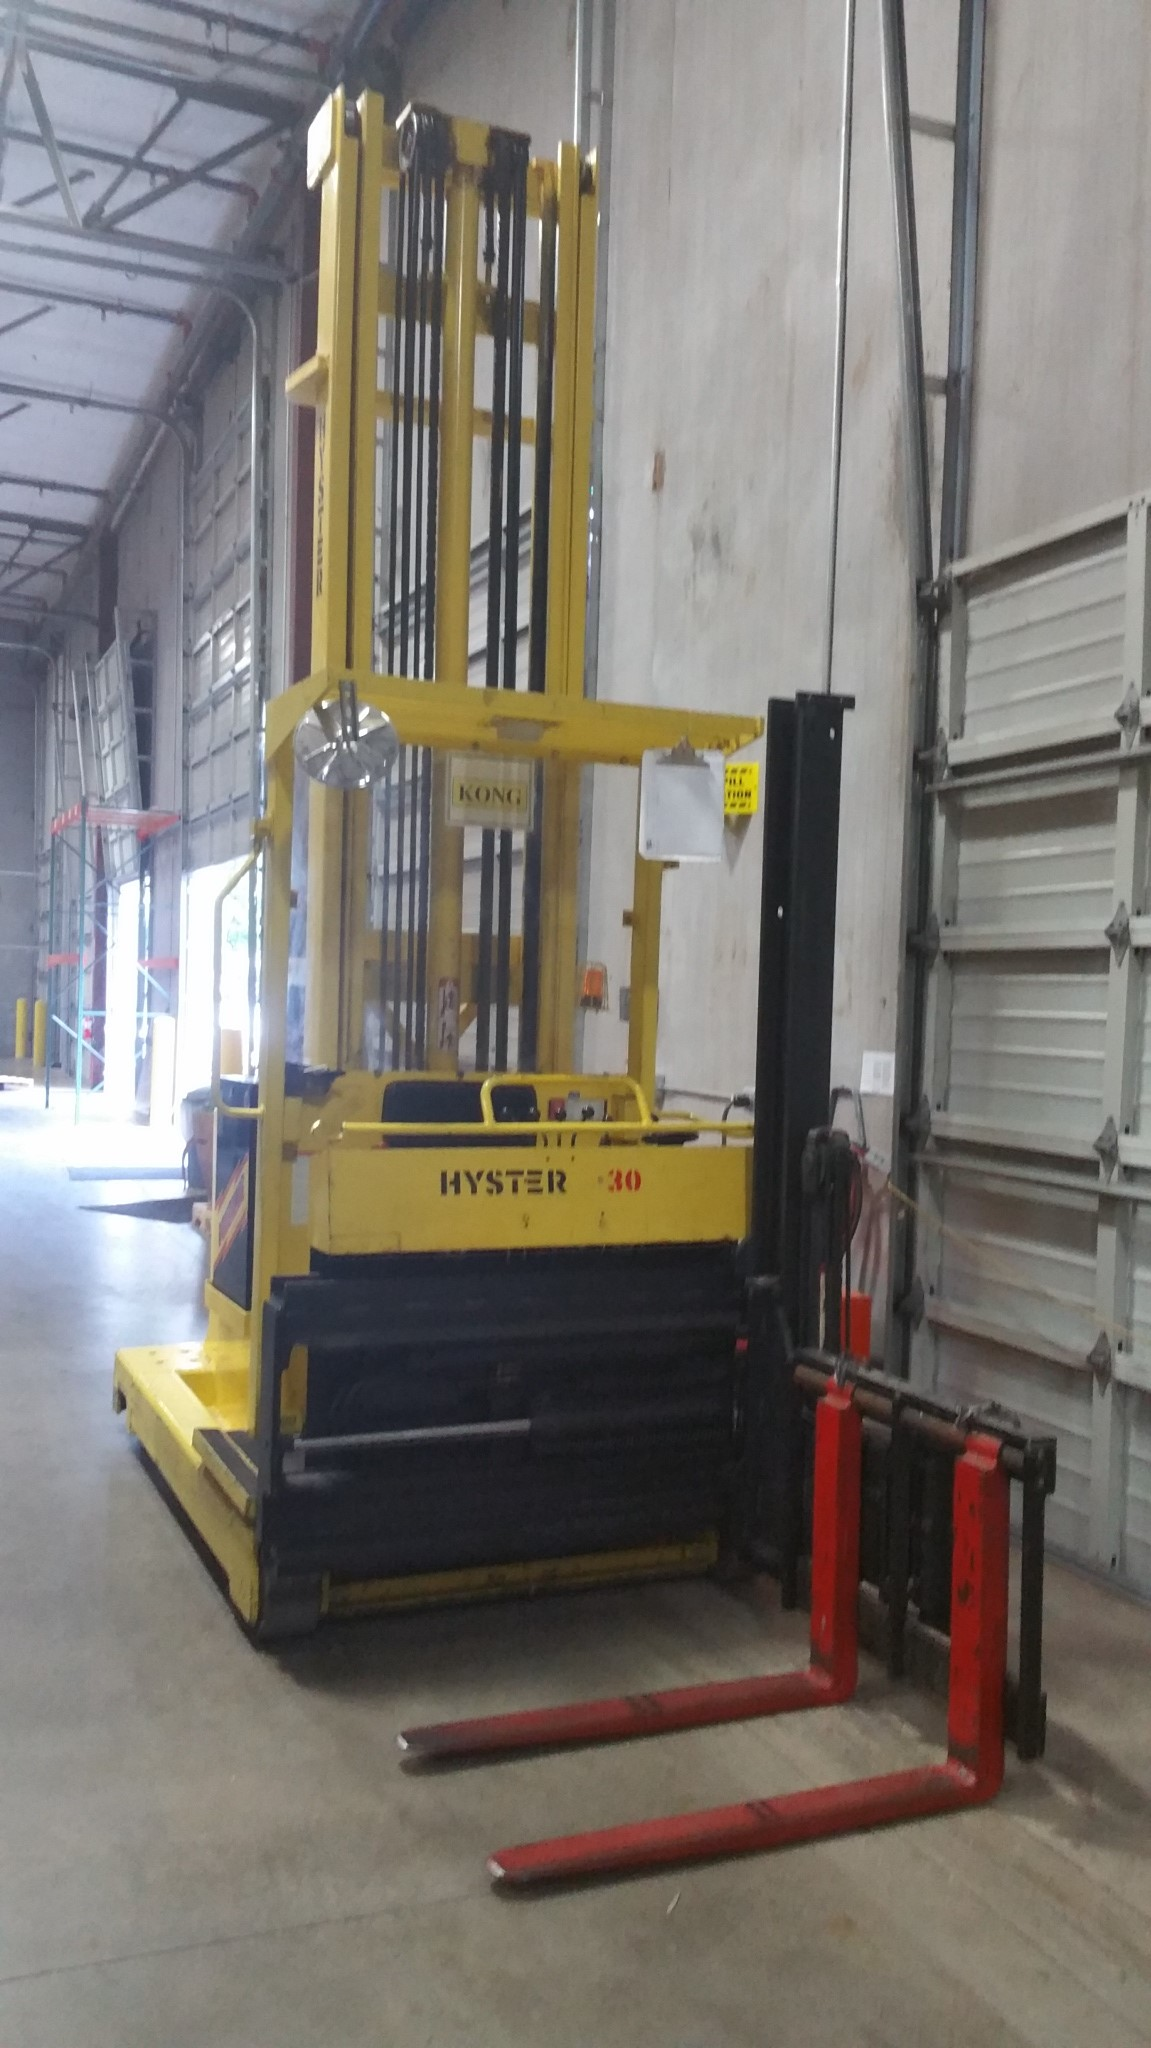 Electric Swing Reach Forklift Hyster Model R30ch Portland Or 30 Wiring Diagram Sold 2018